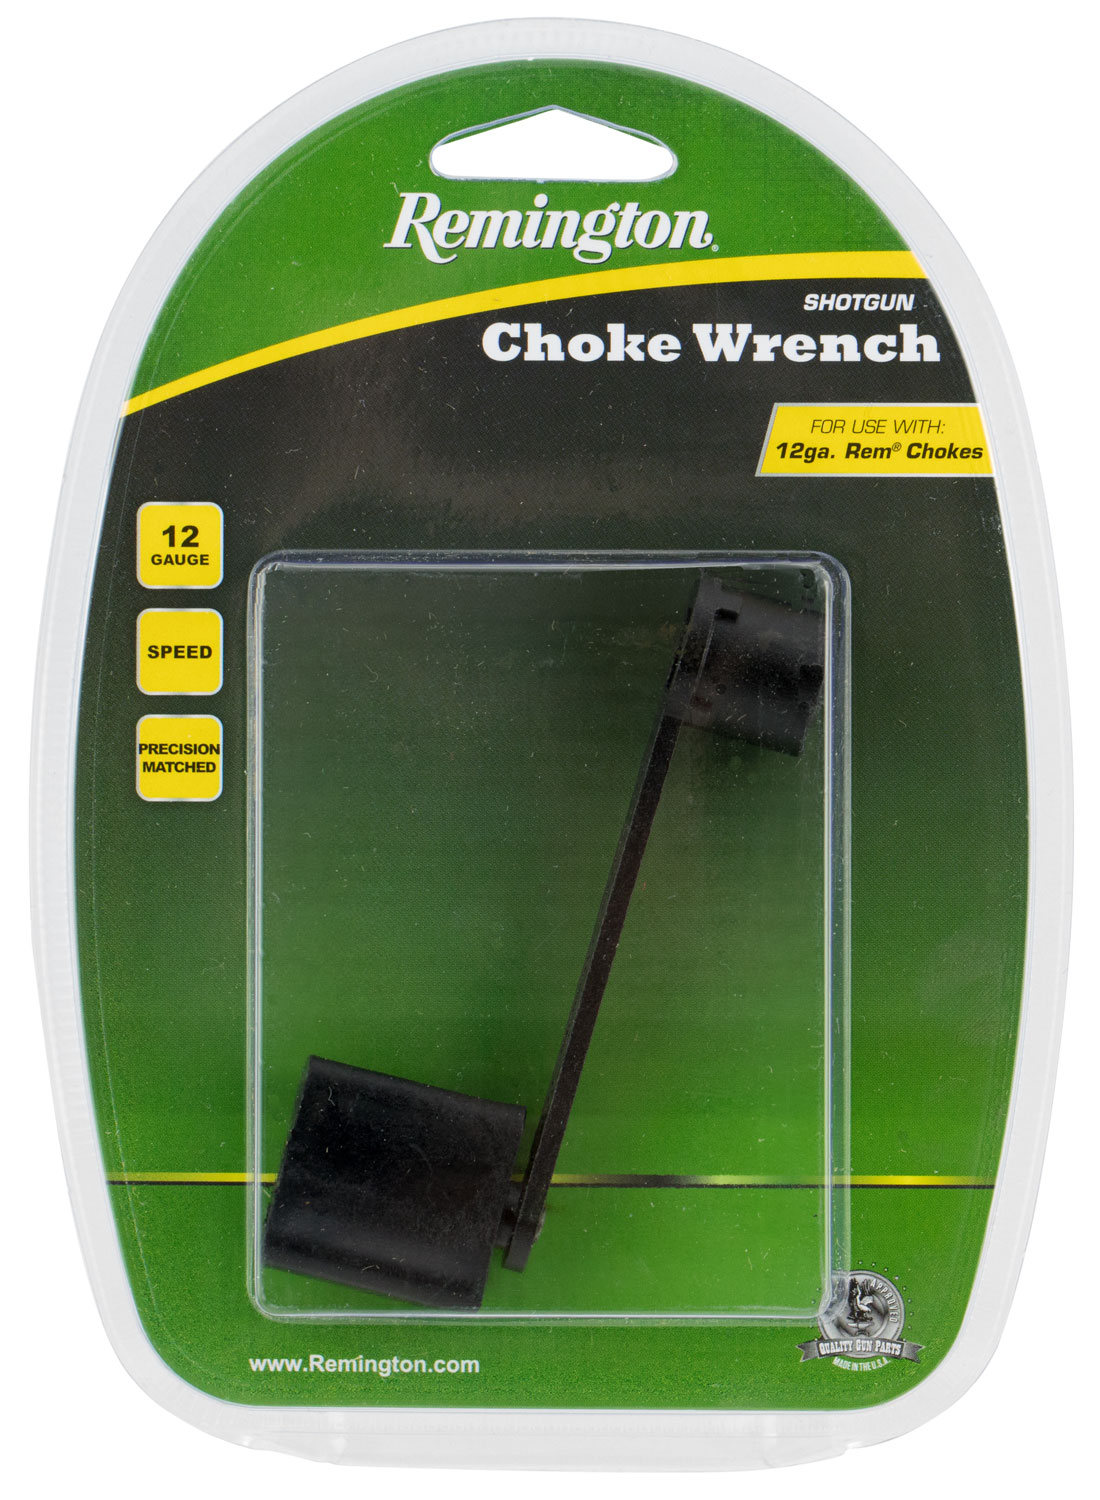 Remington 19173 Choke Wrench 12 GA ALL Black